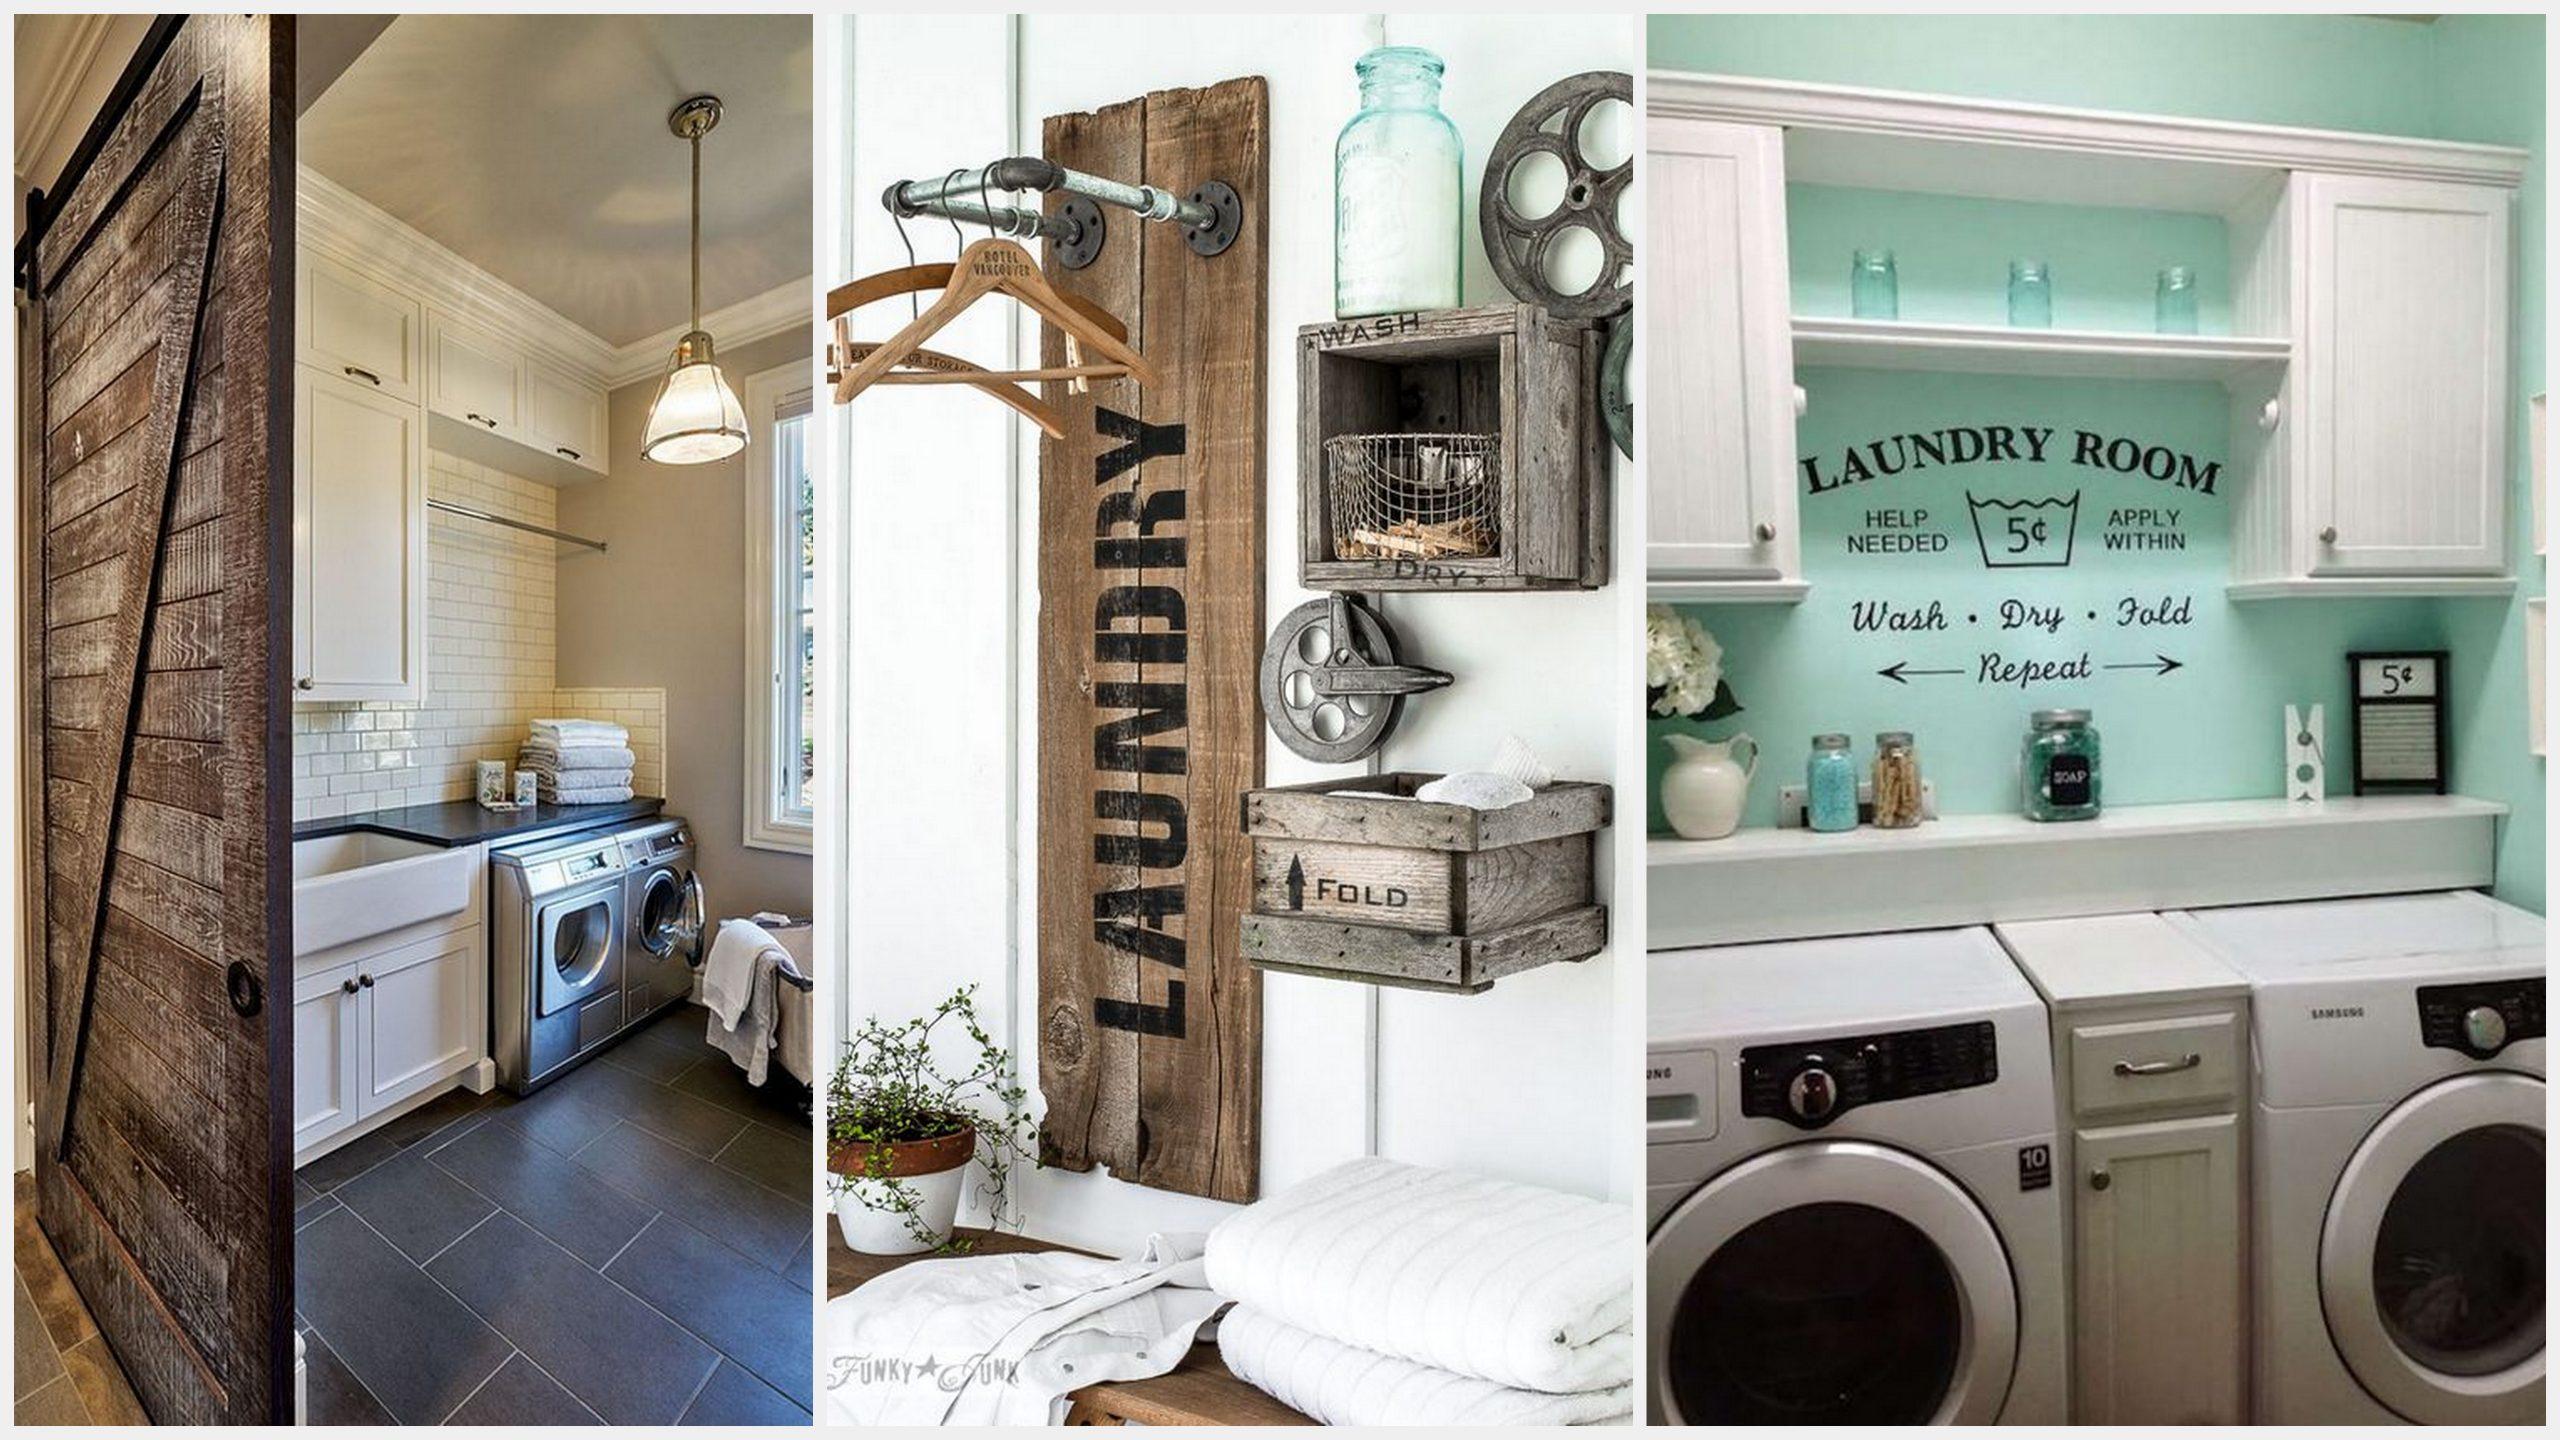 Laundry Room Ideas To Make Your Space Better Useful DIY Projects